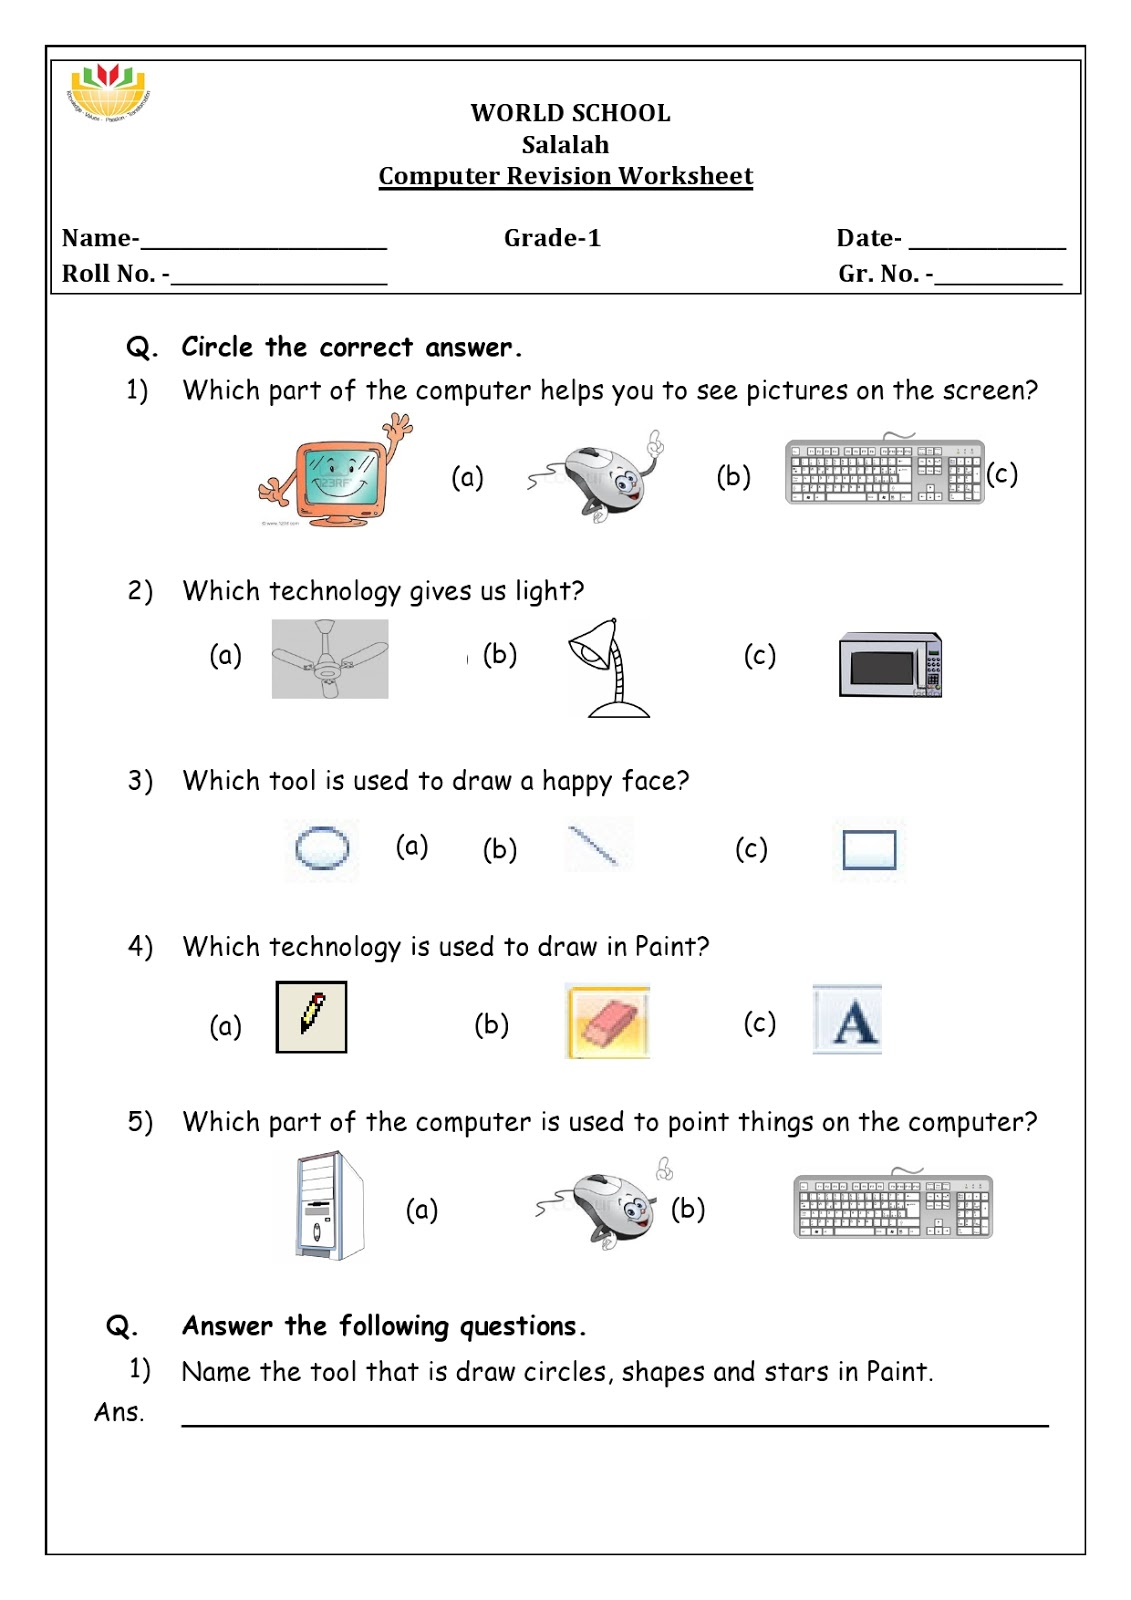 medium resolution of Computer Class Worksheet   Printable Worksheets and Activities for  Teachers